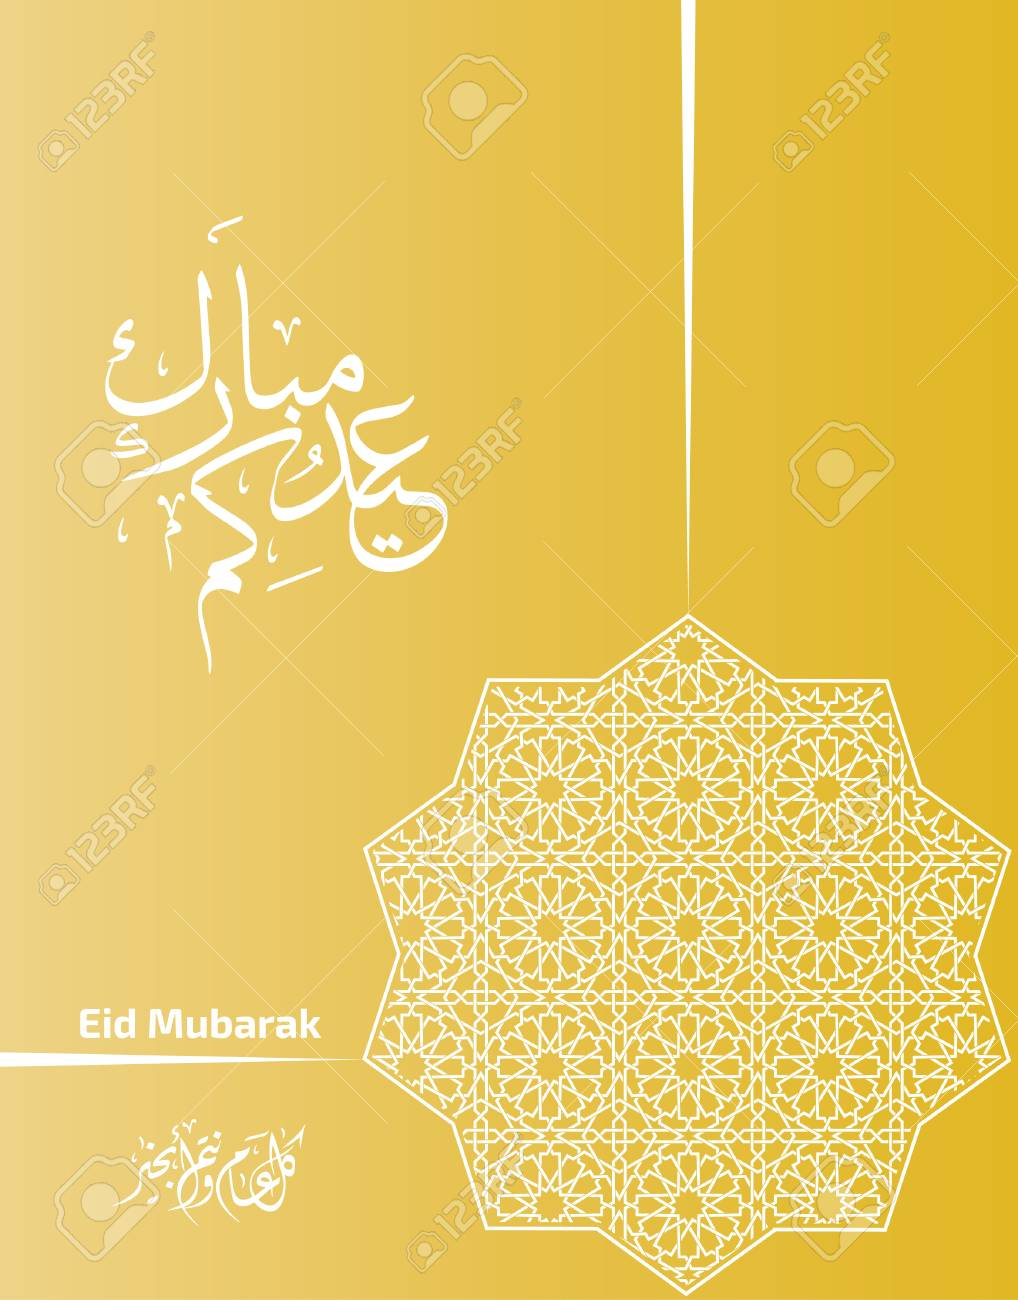 Must see Window eid al-fitr decorations - 80439897-greetings-card-on-the-occasion-of-eid-al-fitr-to-the-muslims-beautiful-islamic-background-arabic-cal  Gallery_13996 .jpg